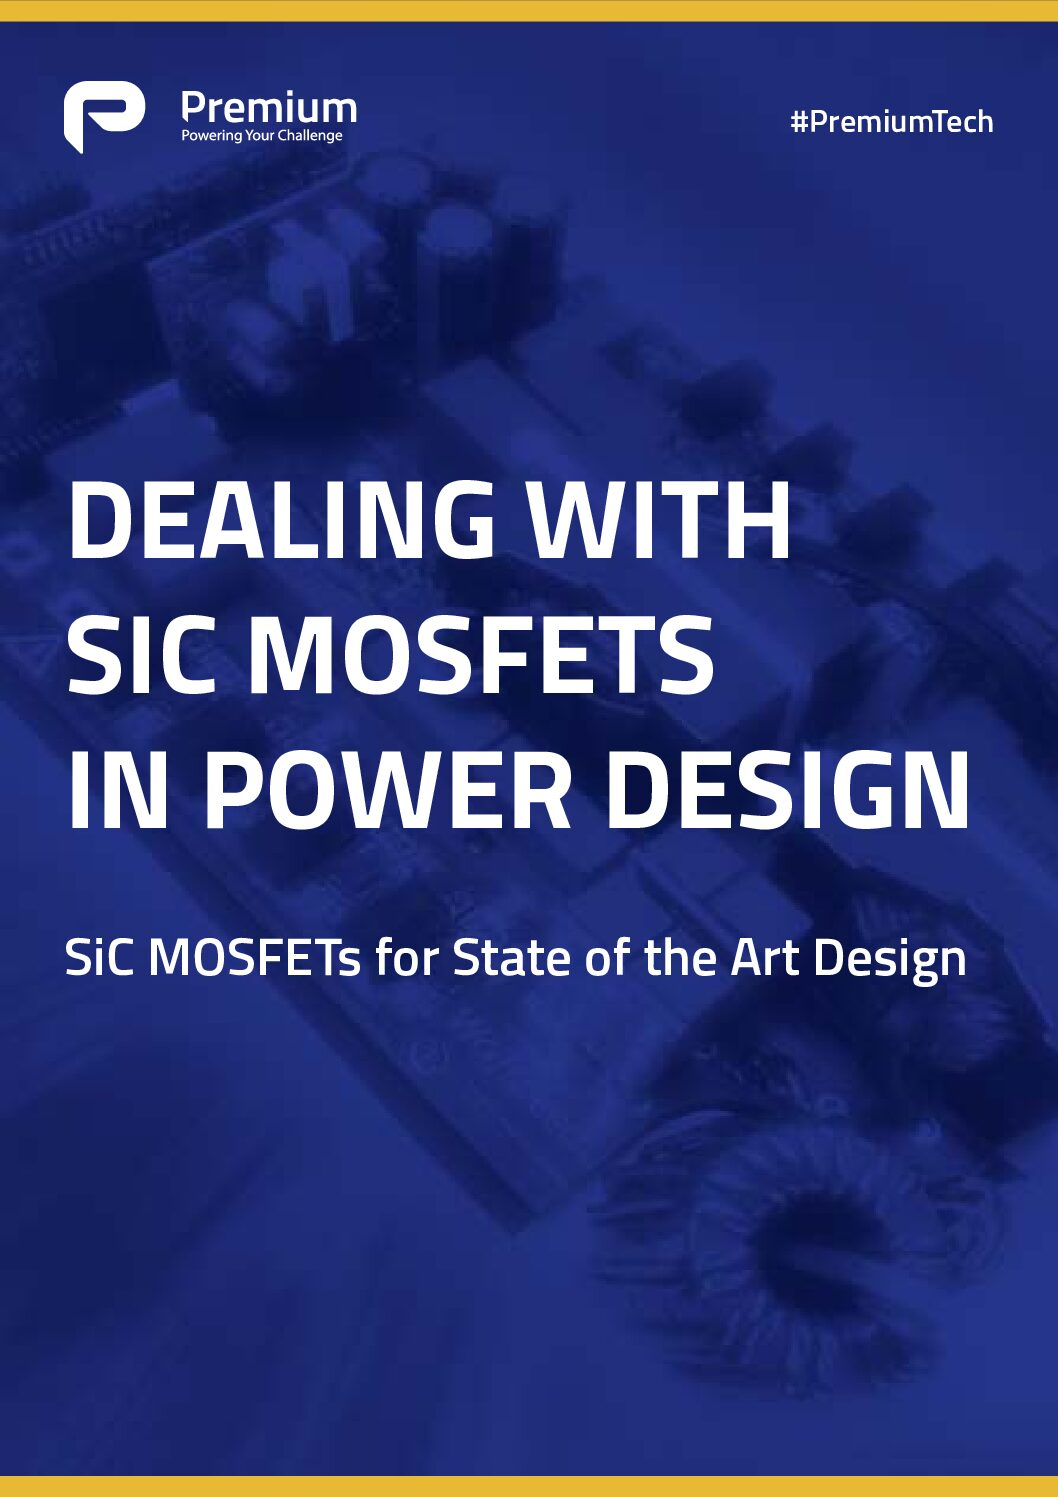 Dealing With SiC MOSFETs in Power Design